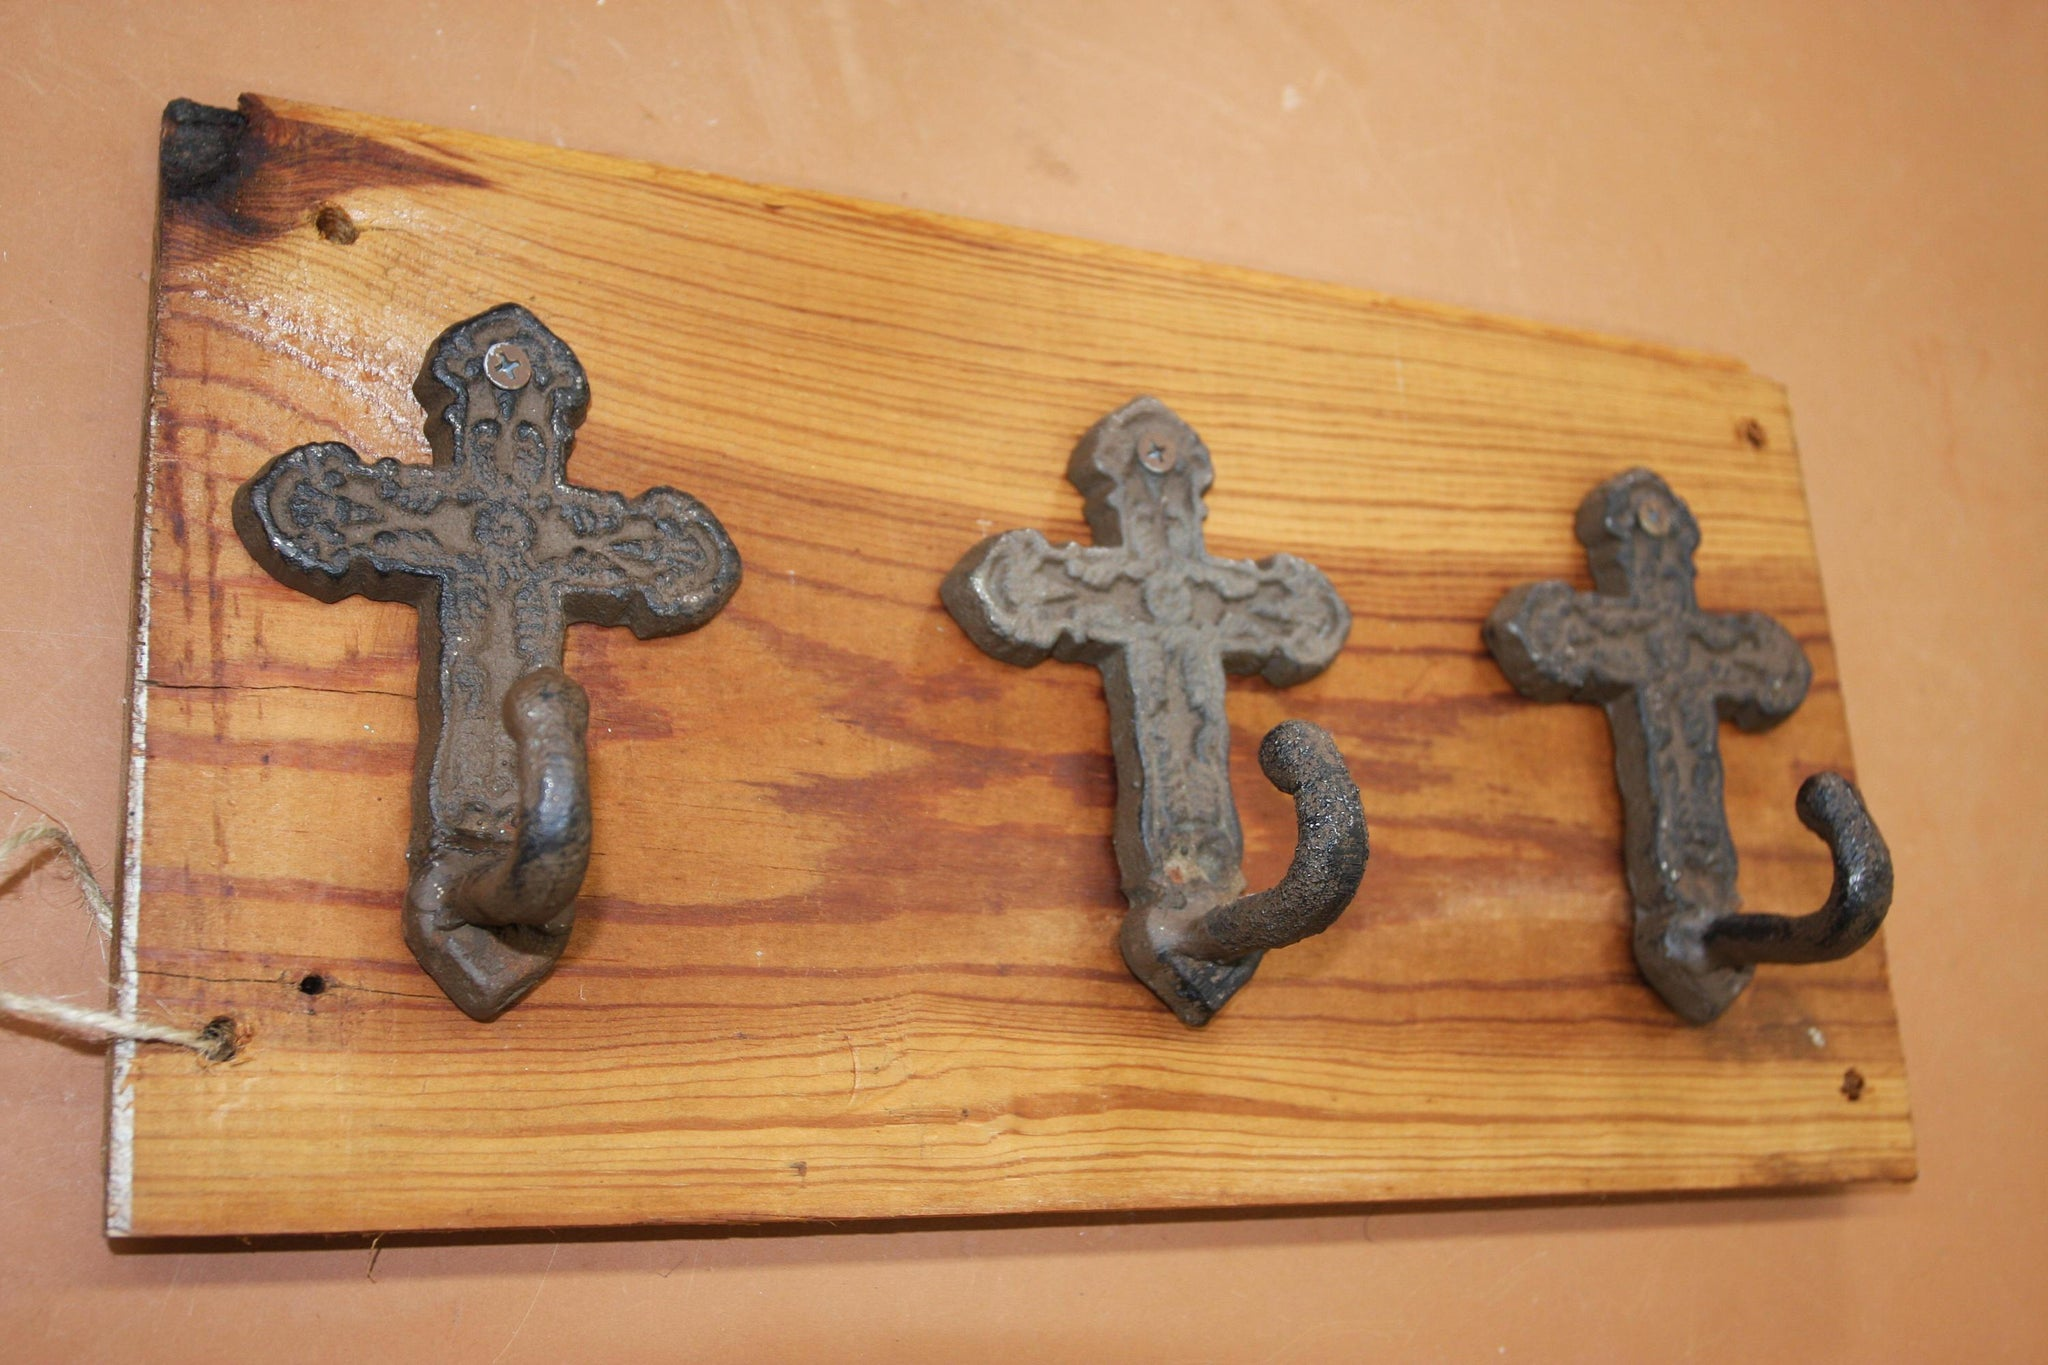 Spanish Mission Bath Towel Hooks Rack, Handmade in USA, Cast Iron, Reclaimed 100 Year Old Wood, The Country Hookers, CH-9